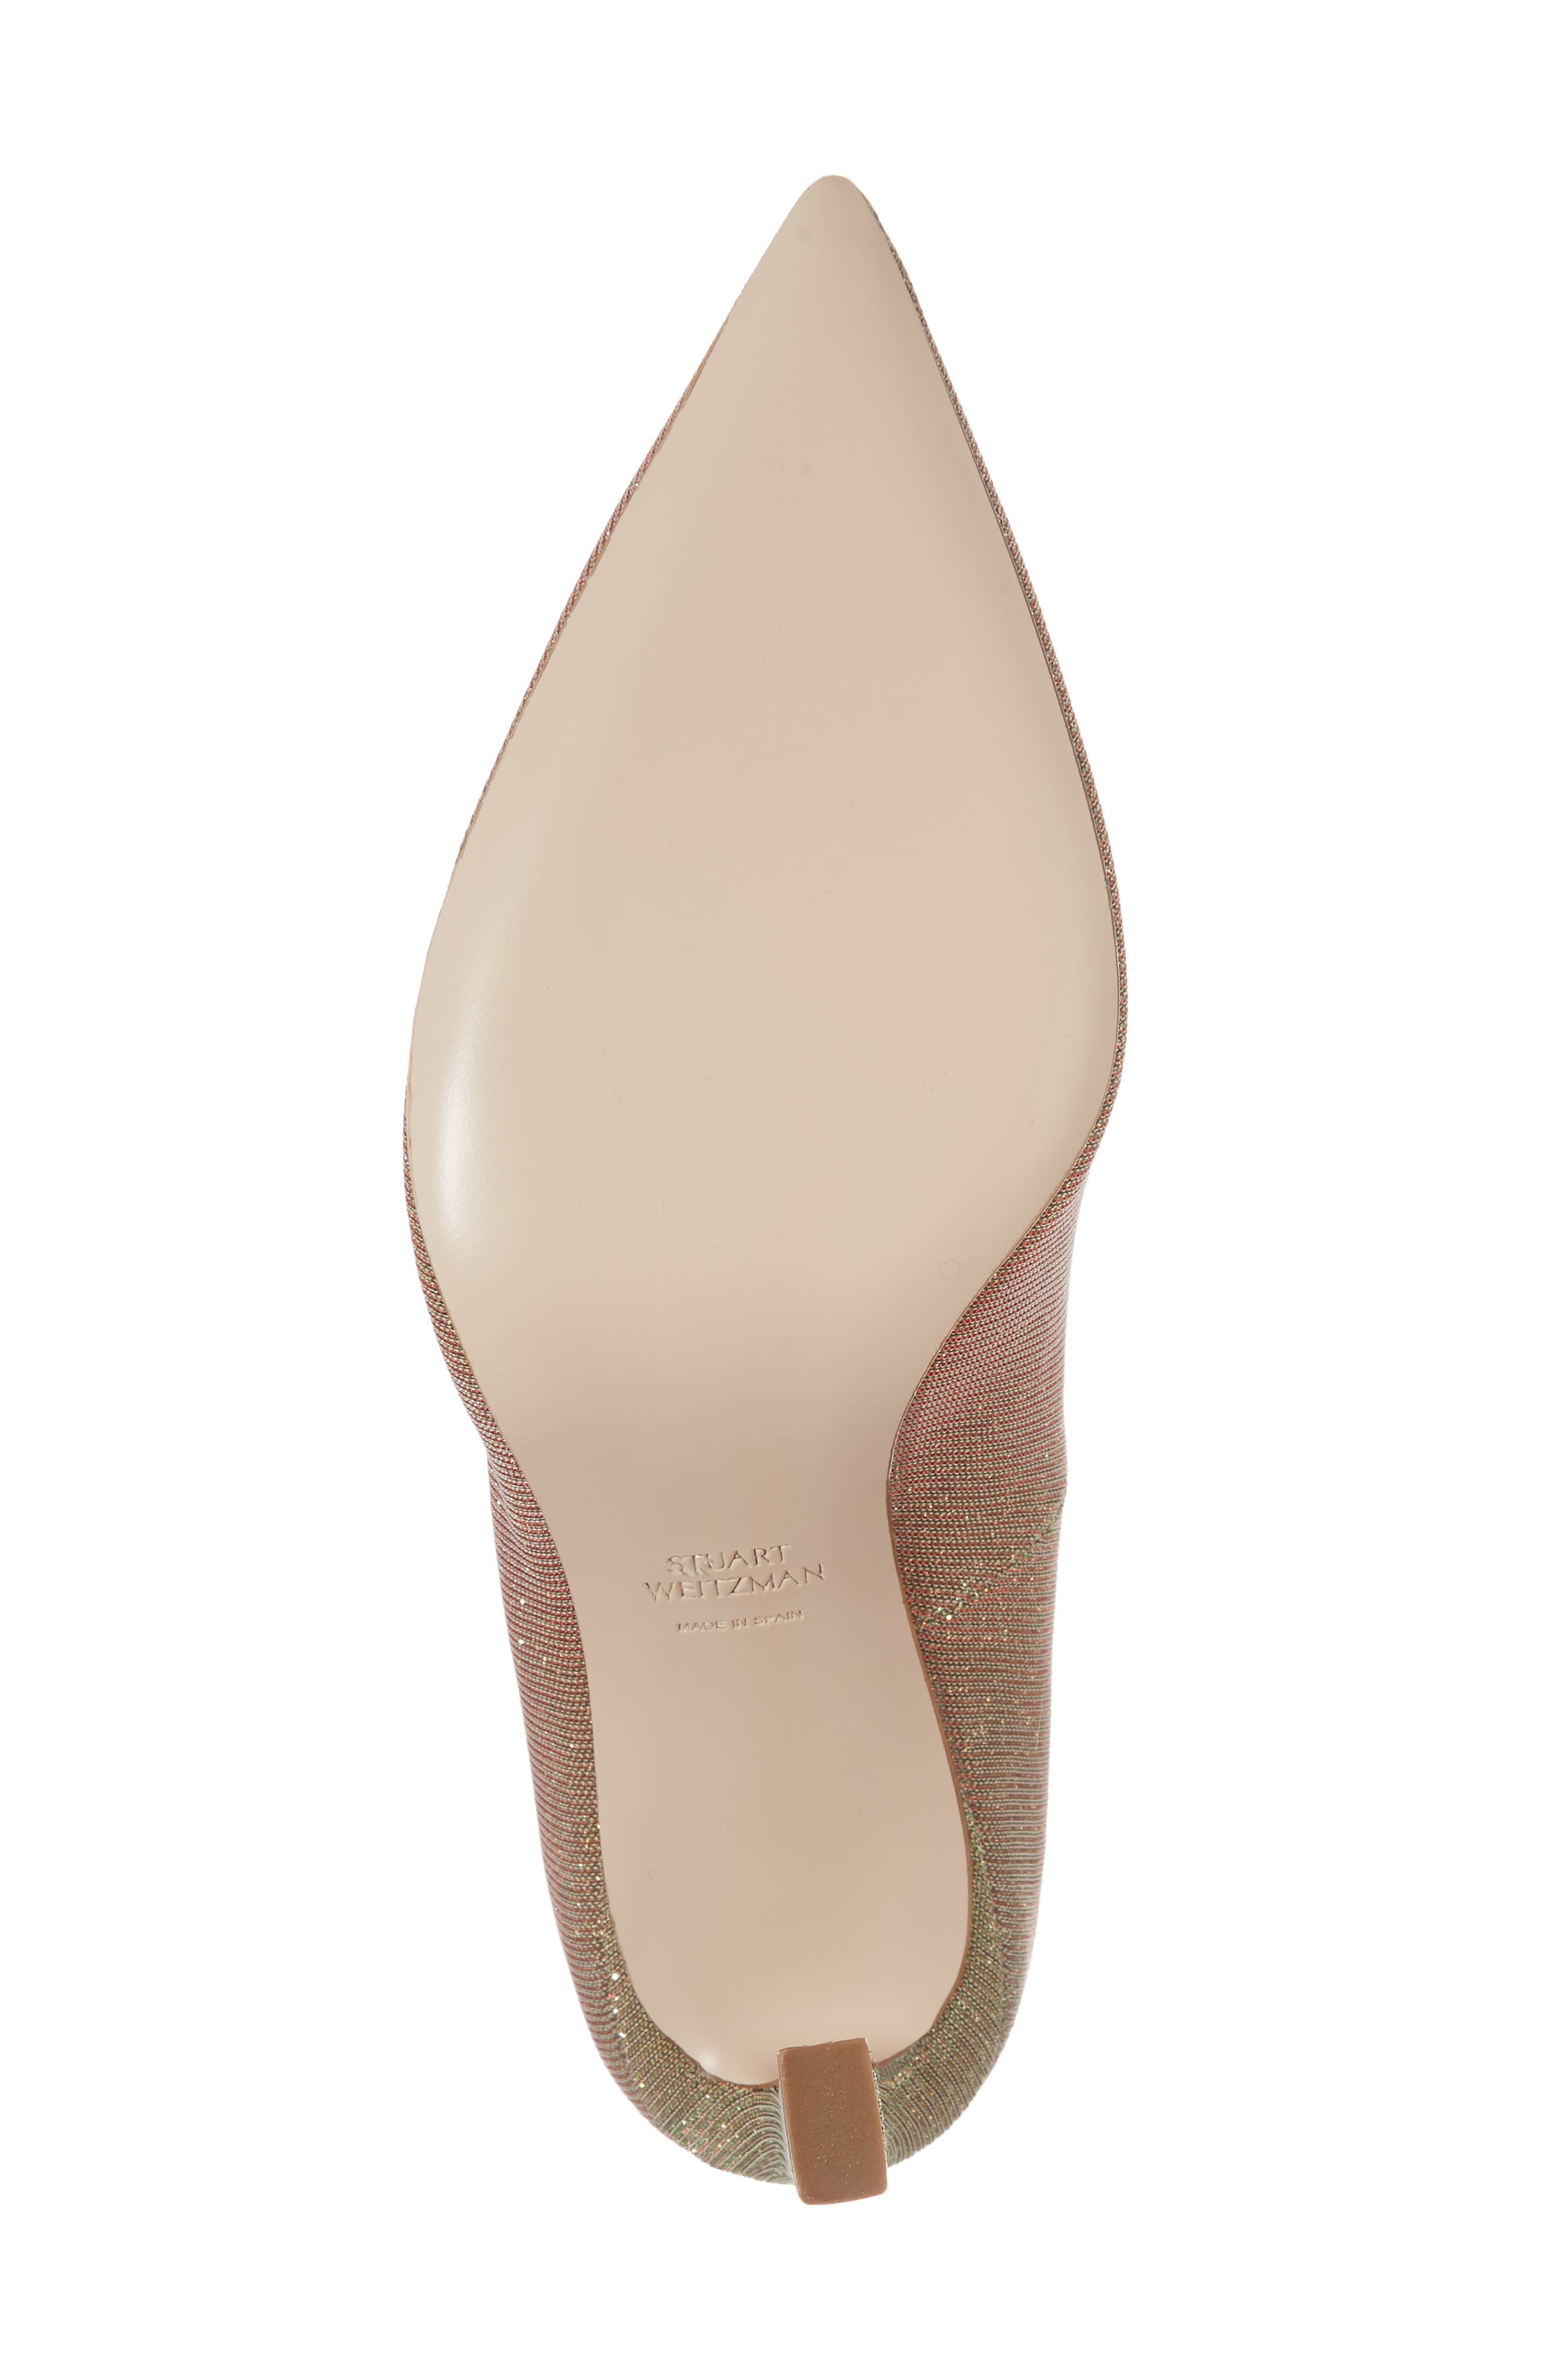 Chicster Pointy Toe Pump,                             Alternate thumbnail 6, color,                             Gold Multi Nighttime